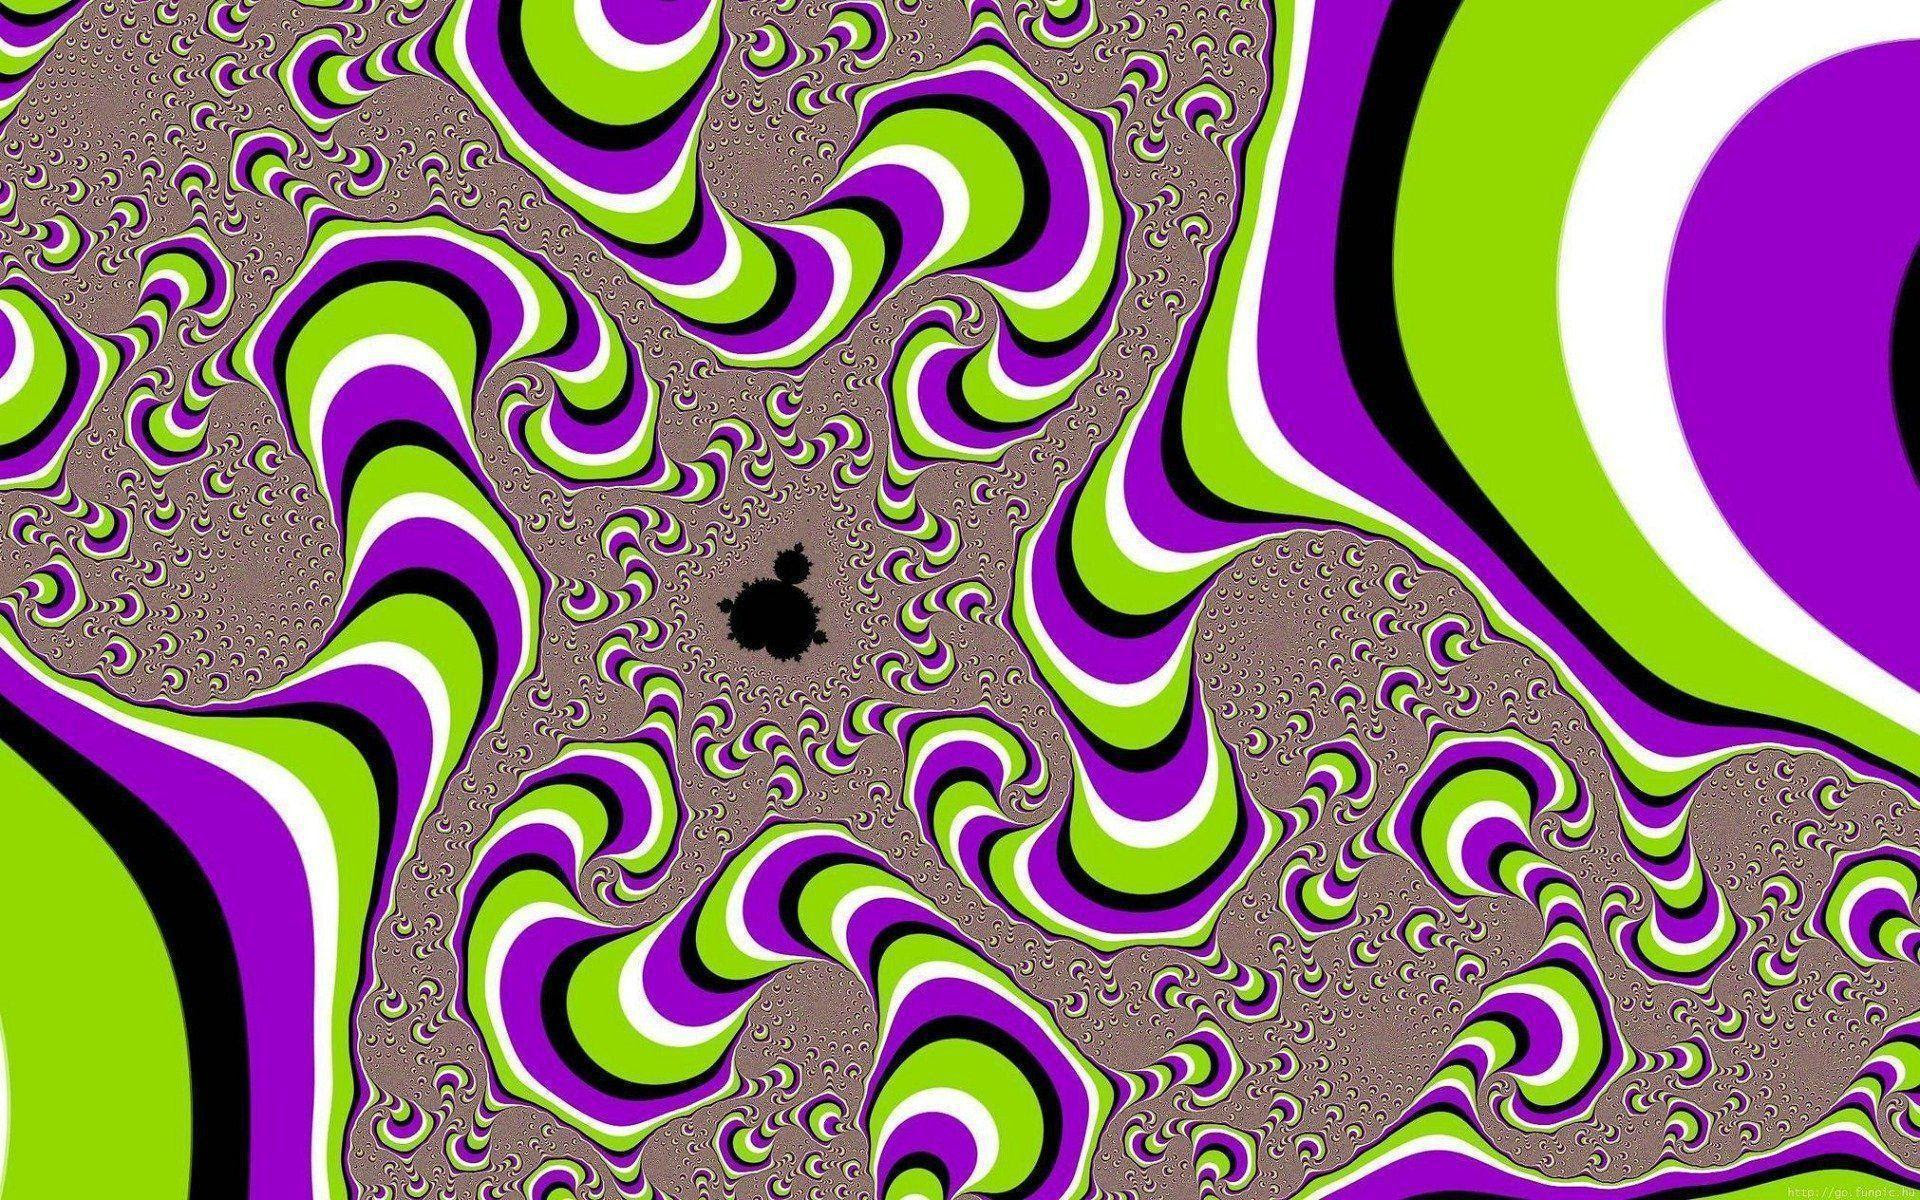 Cool Trippy Backgrounds - Wallpaper Cave